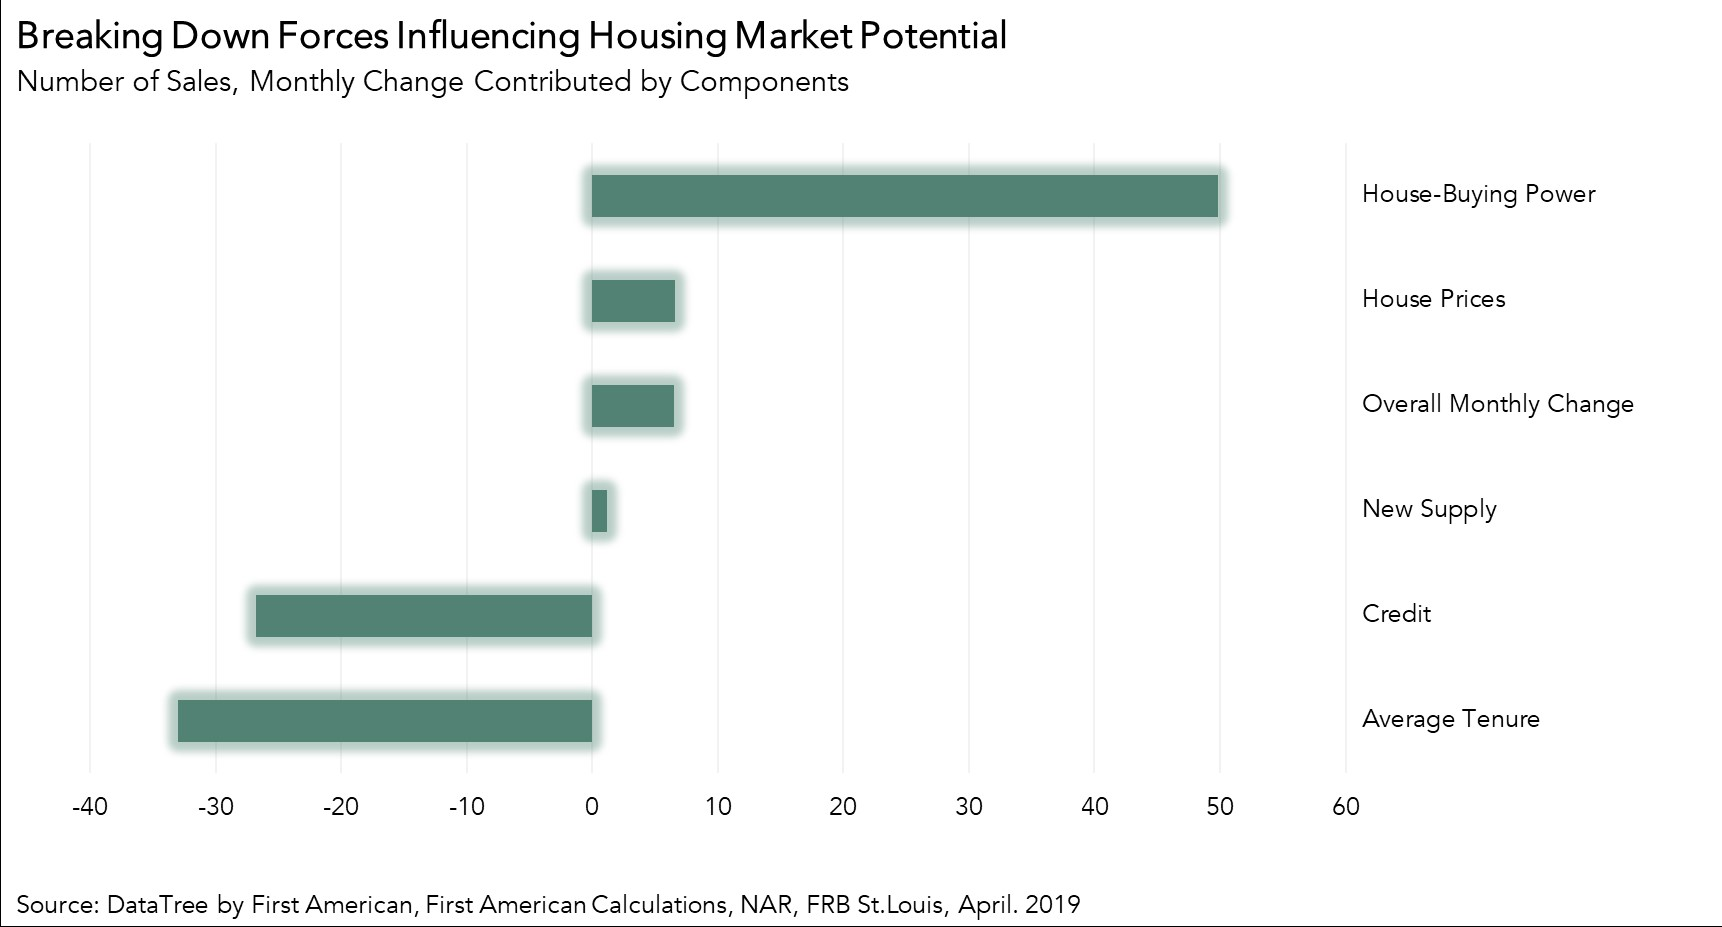 Breaking Down Forces Influencing Housing Market Potential - April 2019